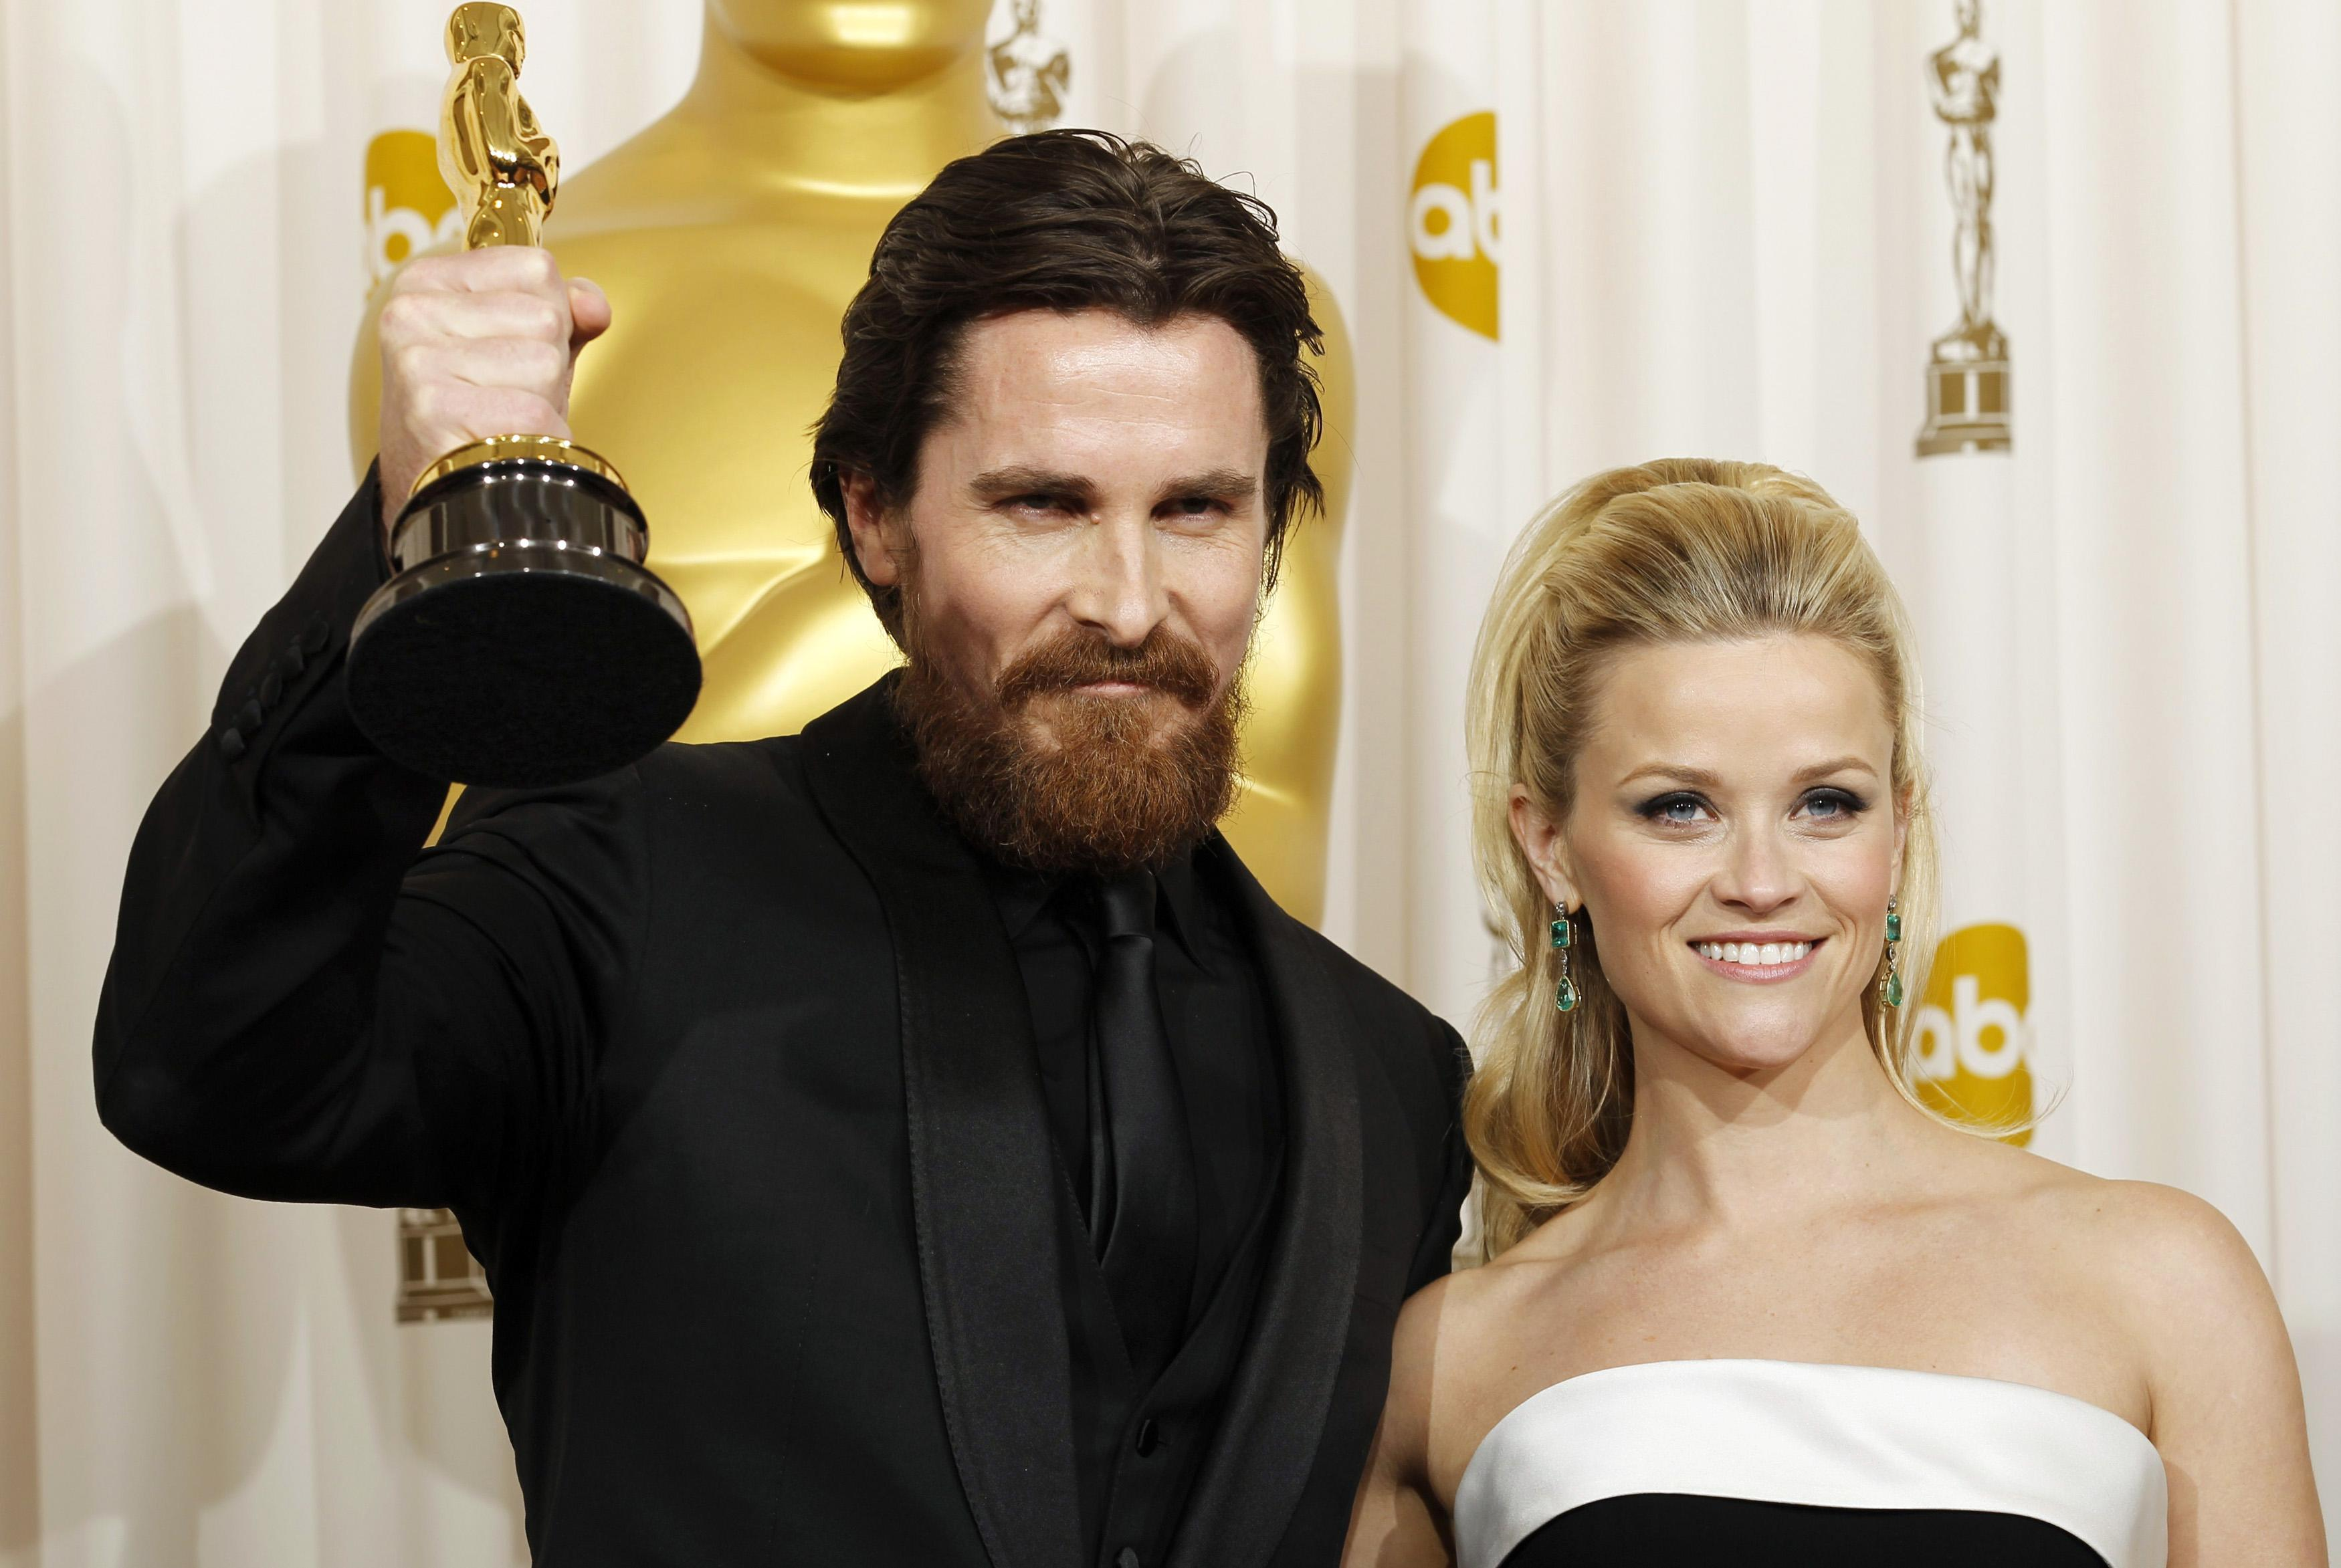 Bale Witherspoon